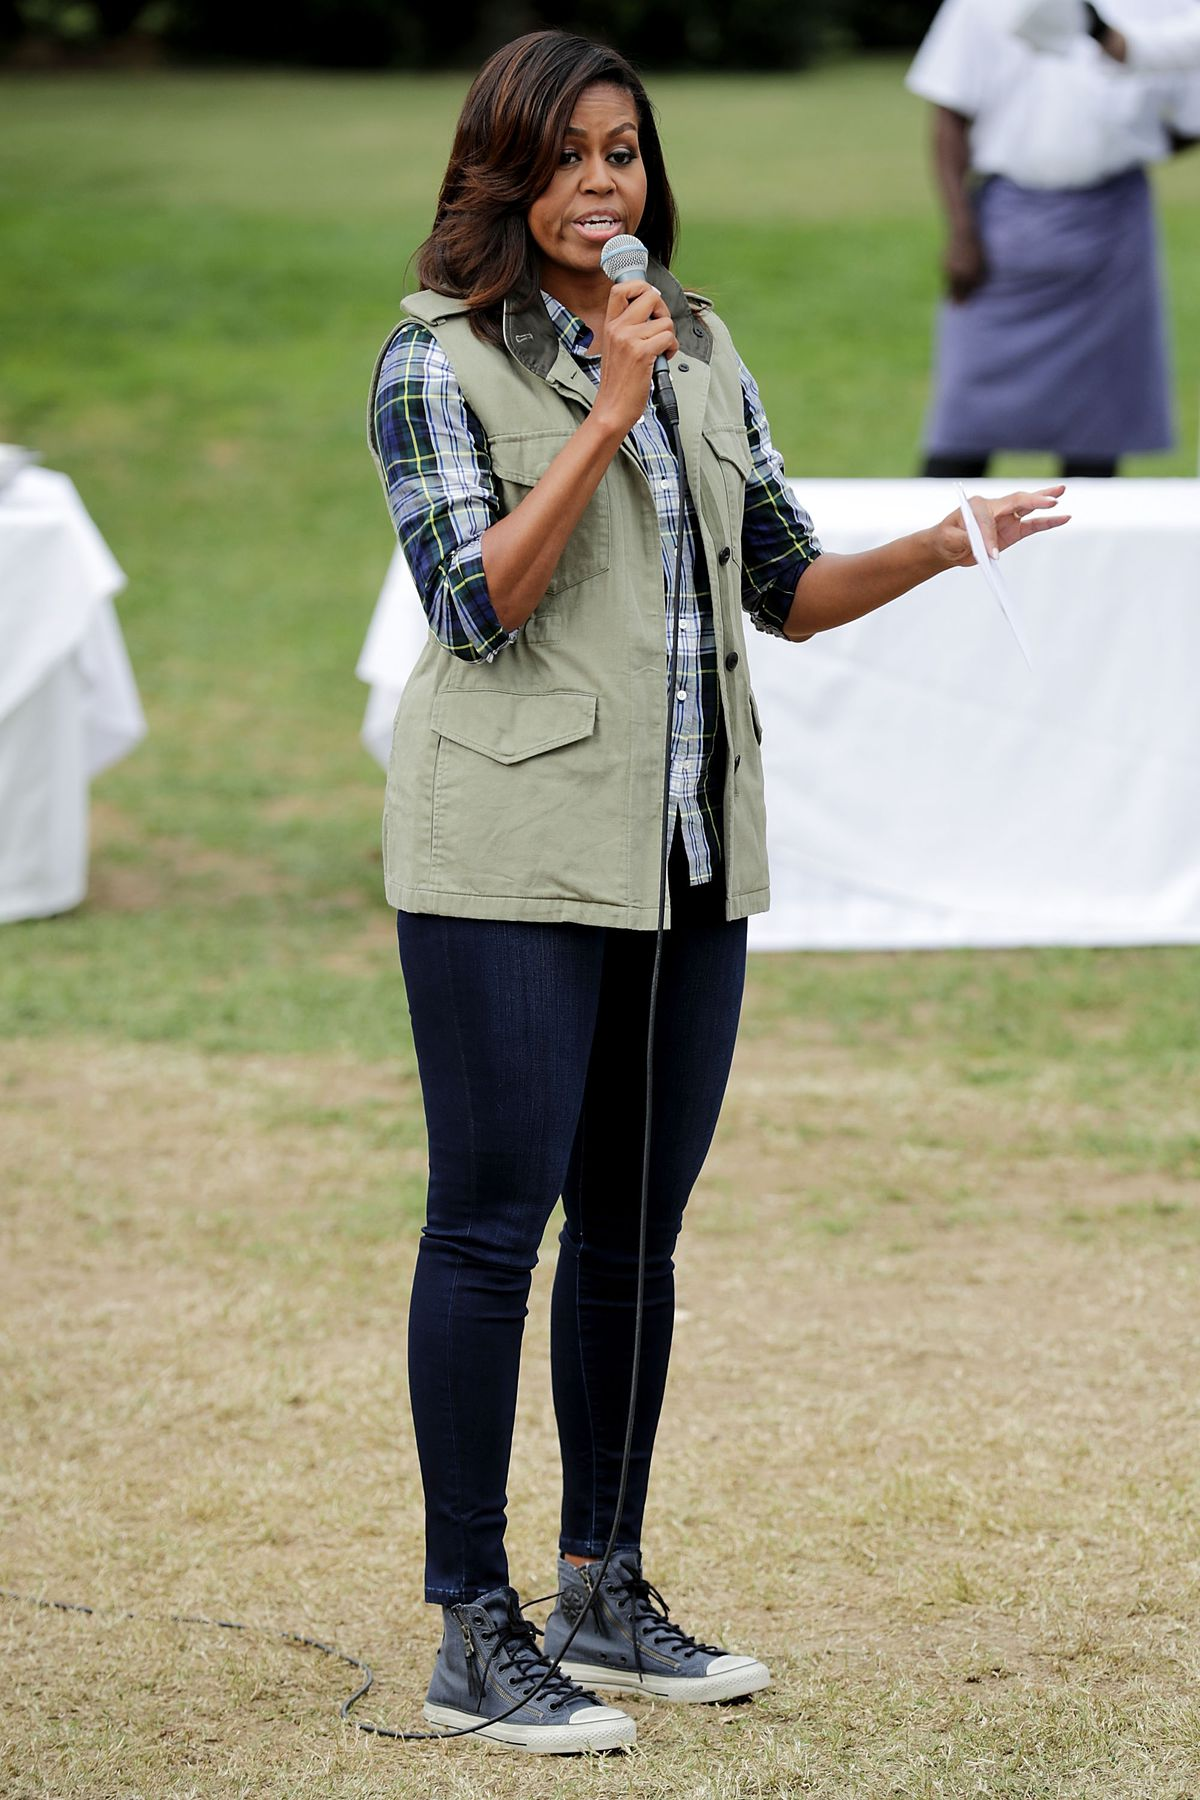 Michelle Obama looking casual in the White House garden in October 2016.